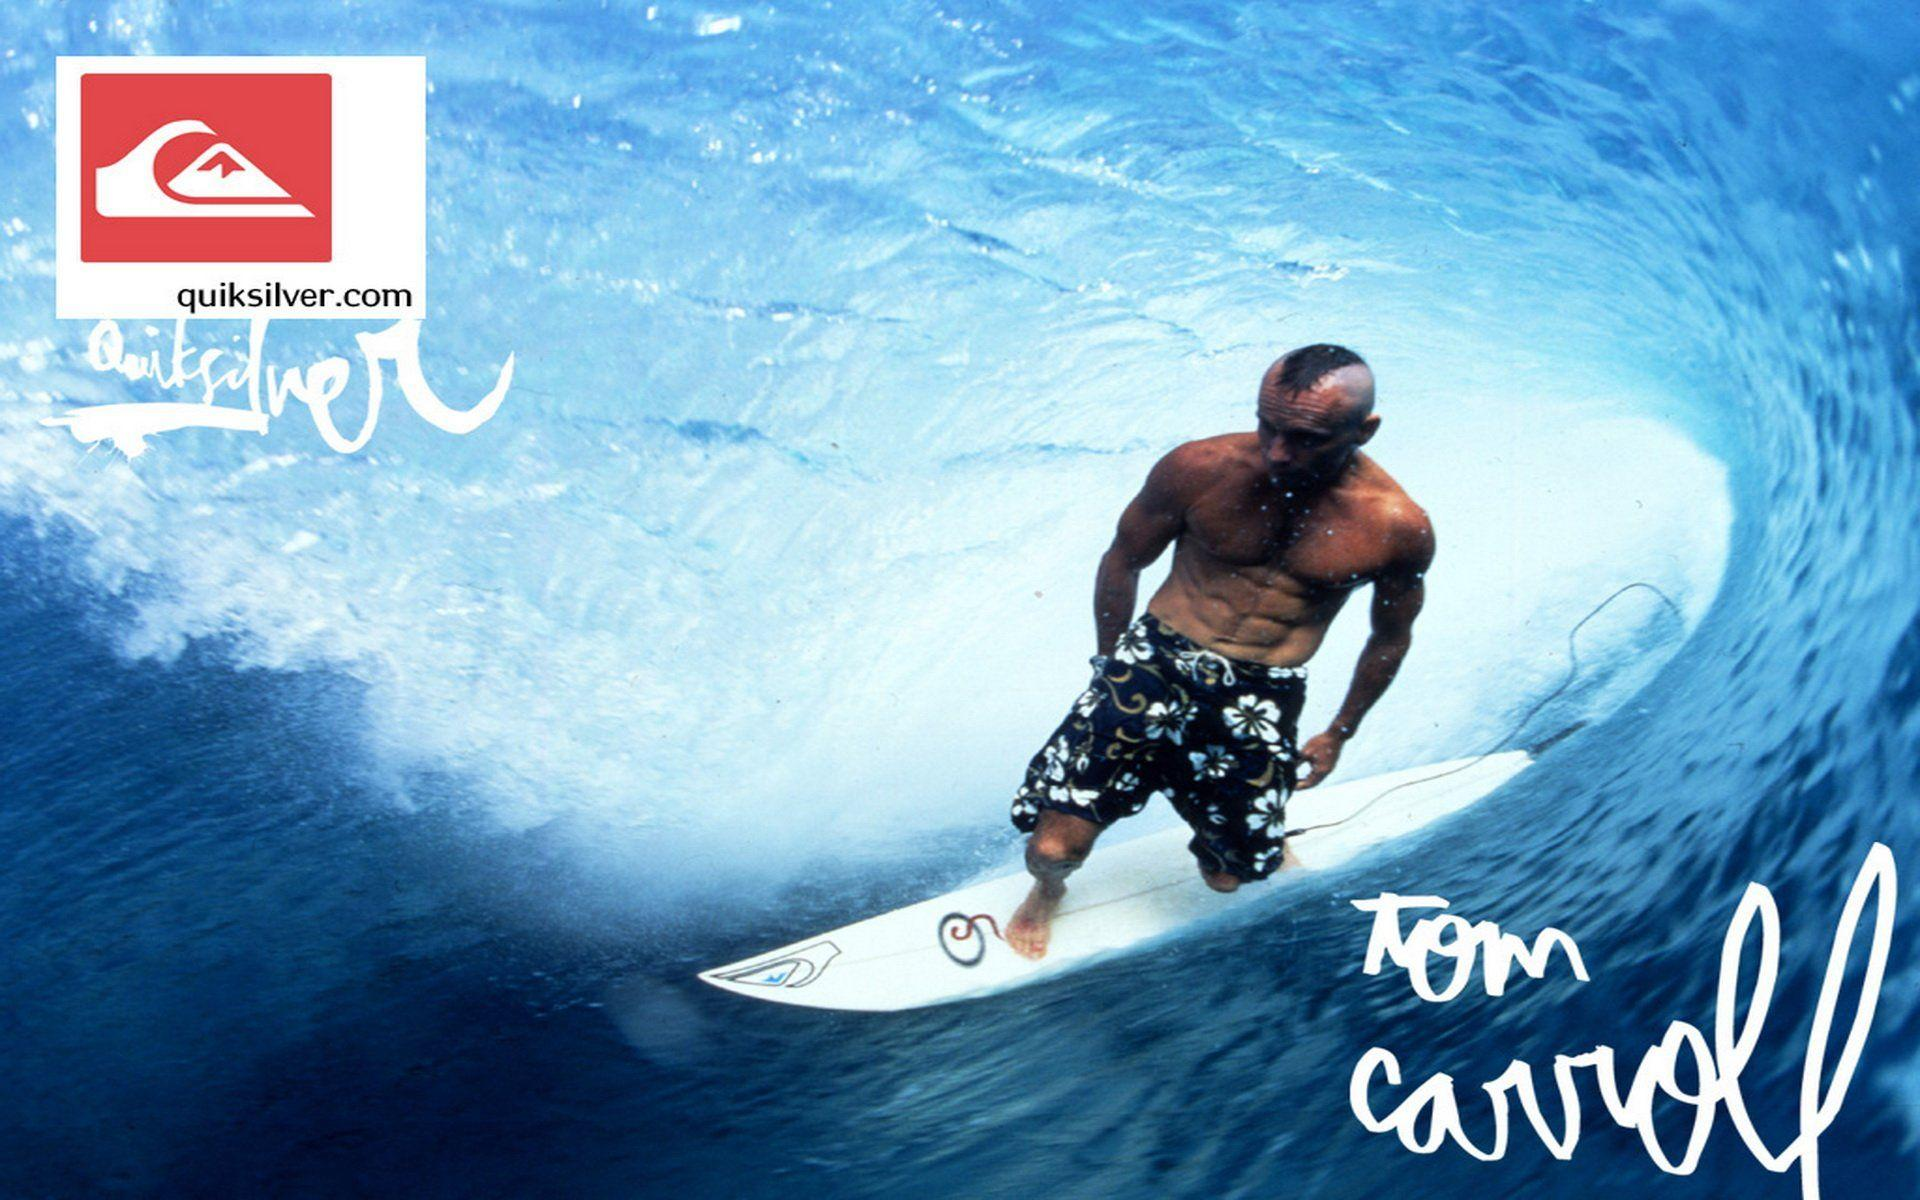 Quiksilver surf wallpapers hd